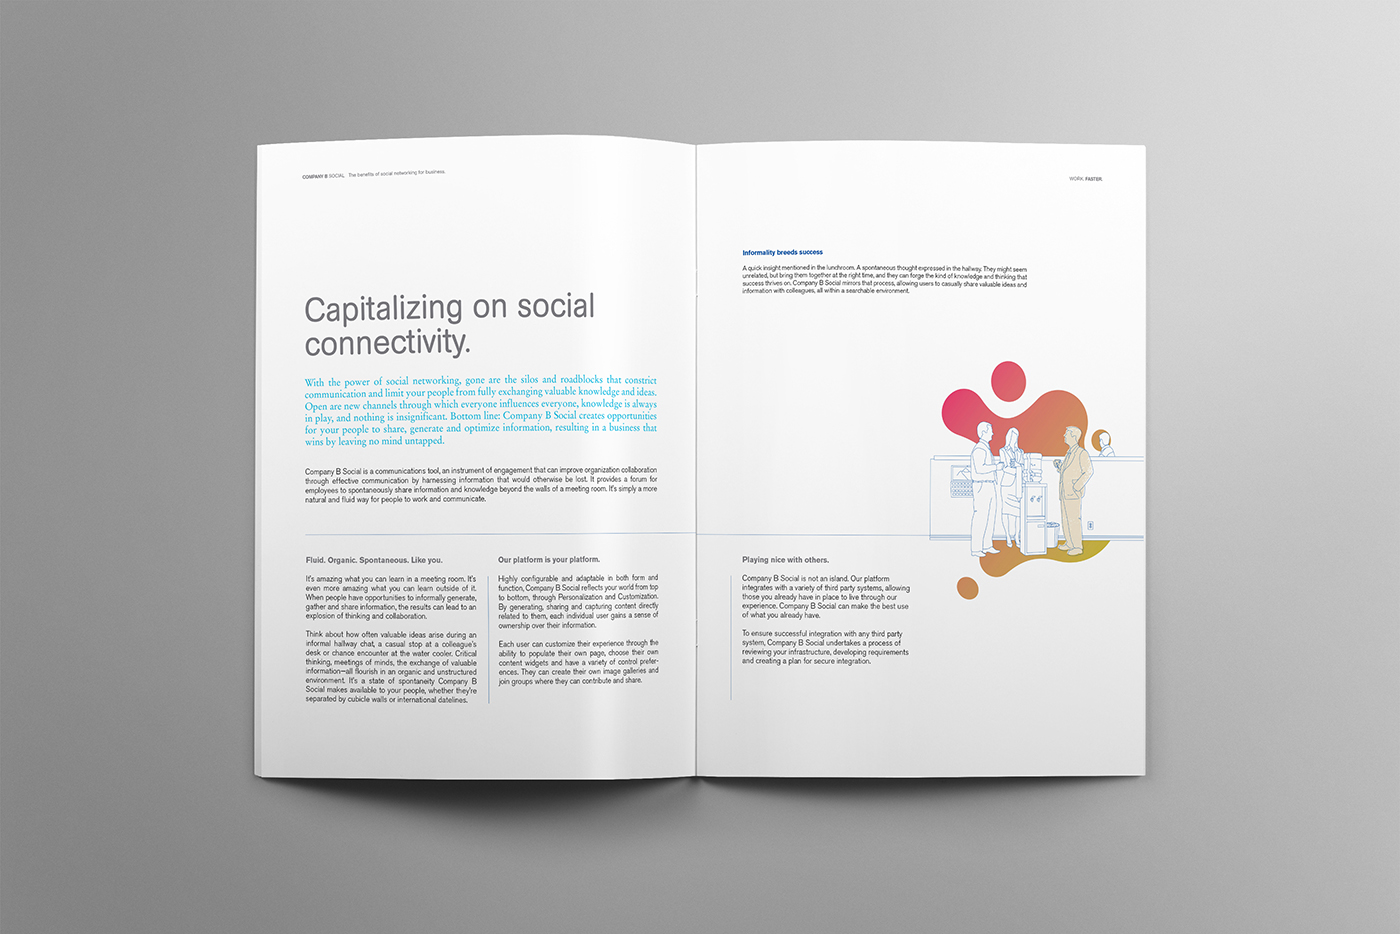 Clean design for Company B magazine that features unique illustrations.